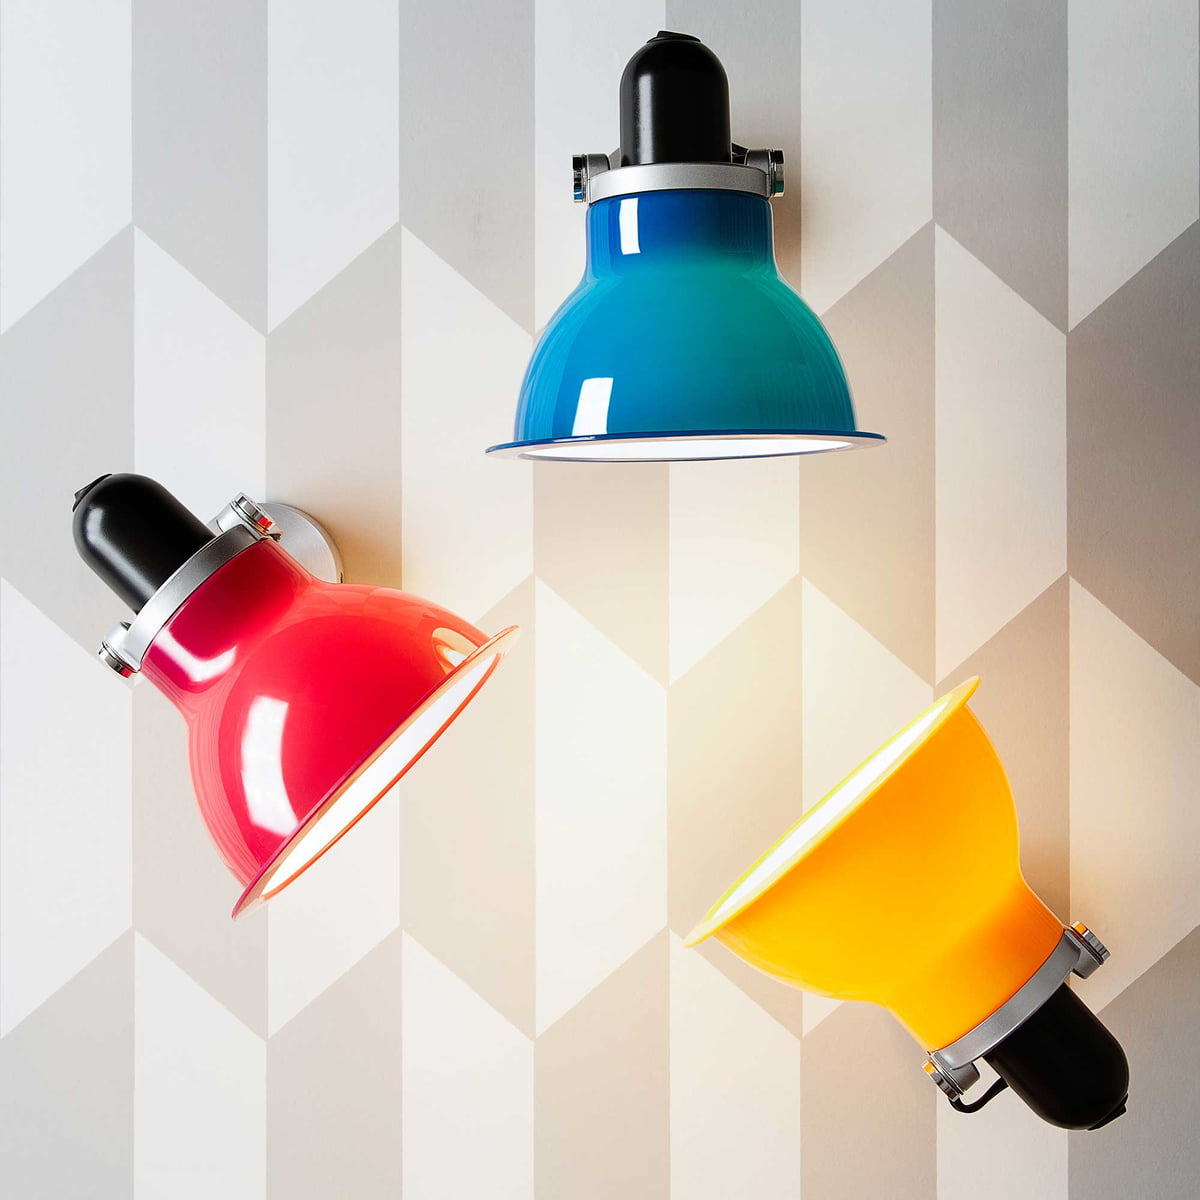 Type 1228 wall lamp by anglepoise anglepoise type 1228 wall lamp mozeypictures